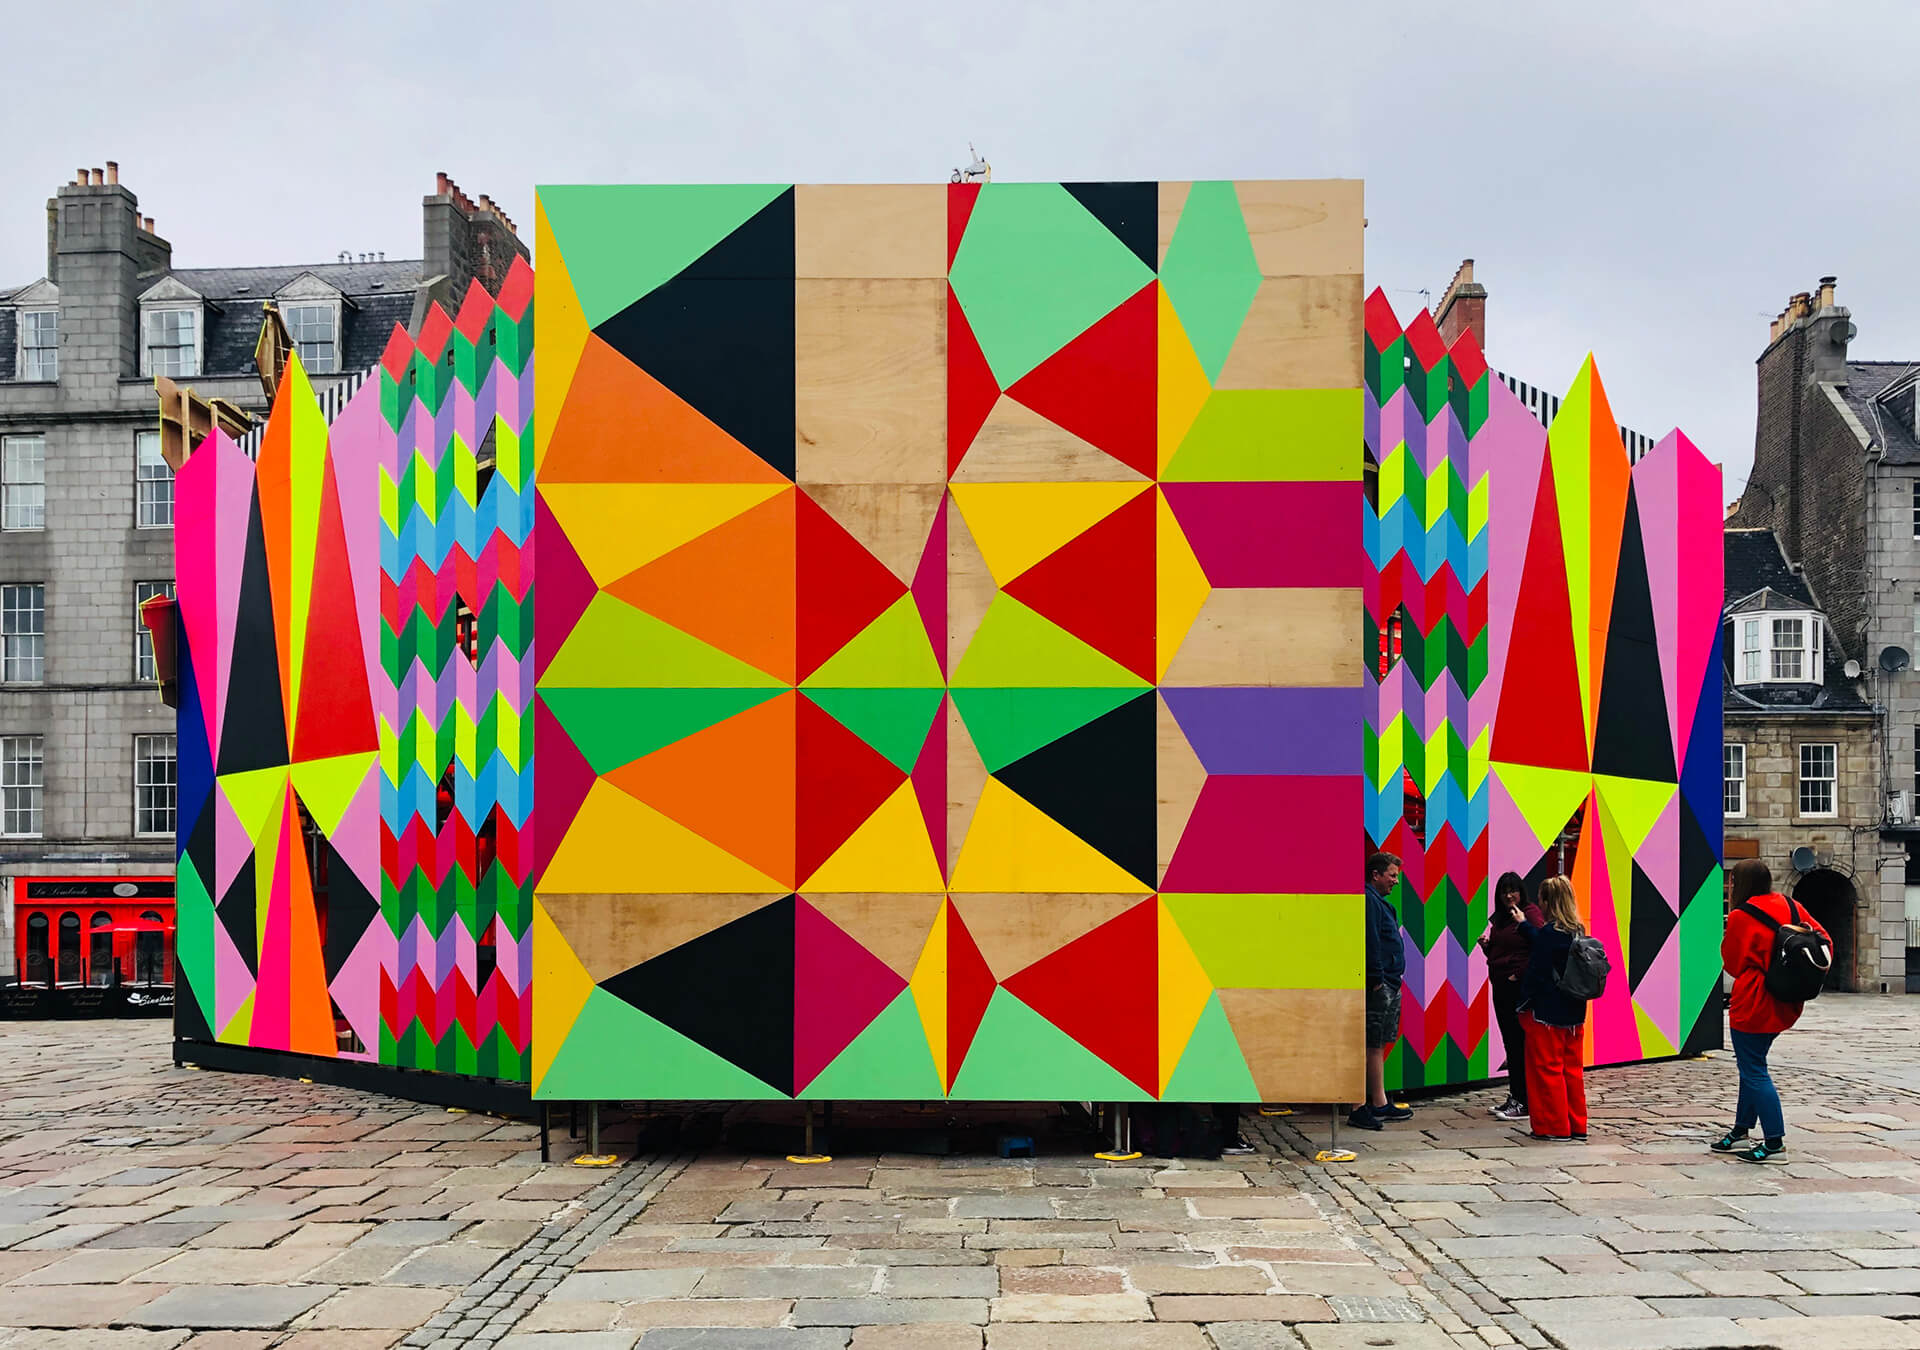 The bold colours and eclectic designs symbolise artist's own sensibility and style | Morag Myerscough | Women in Design 2020+ | STIRworld